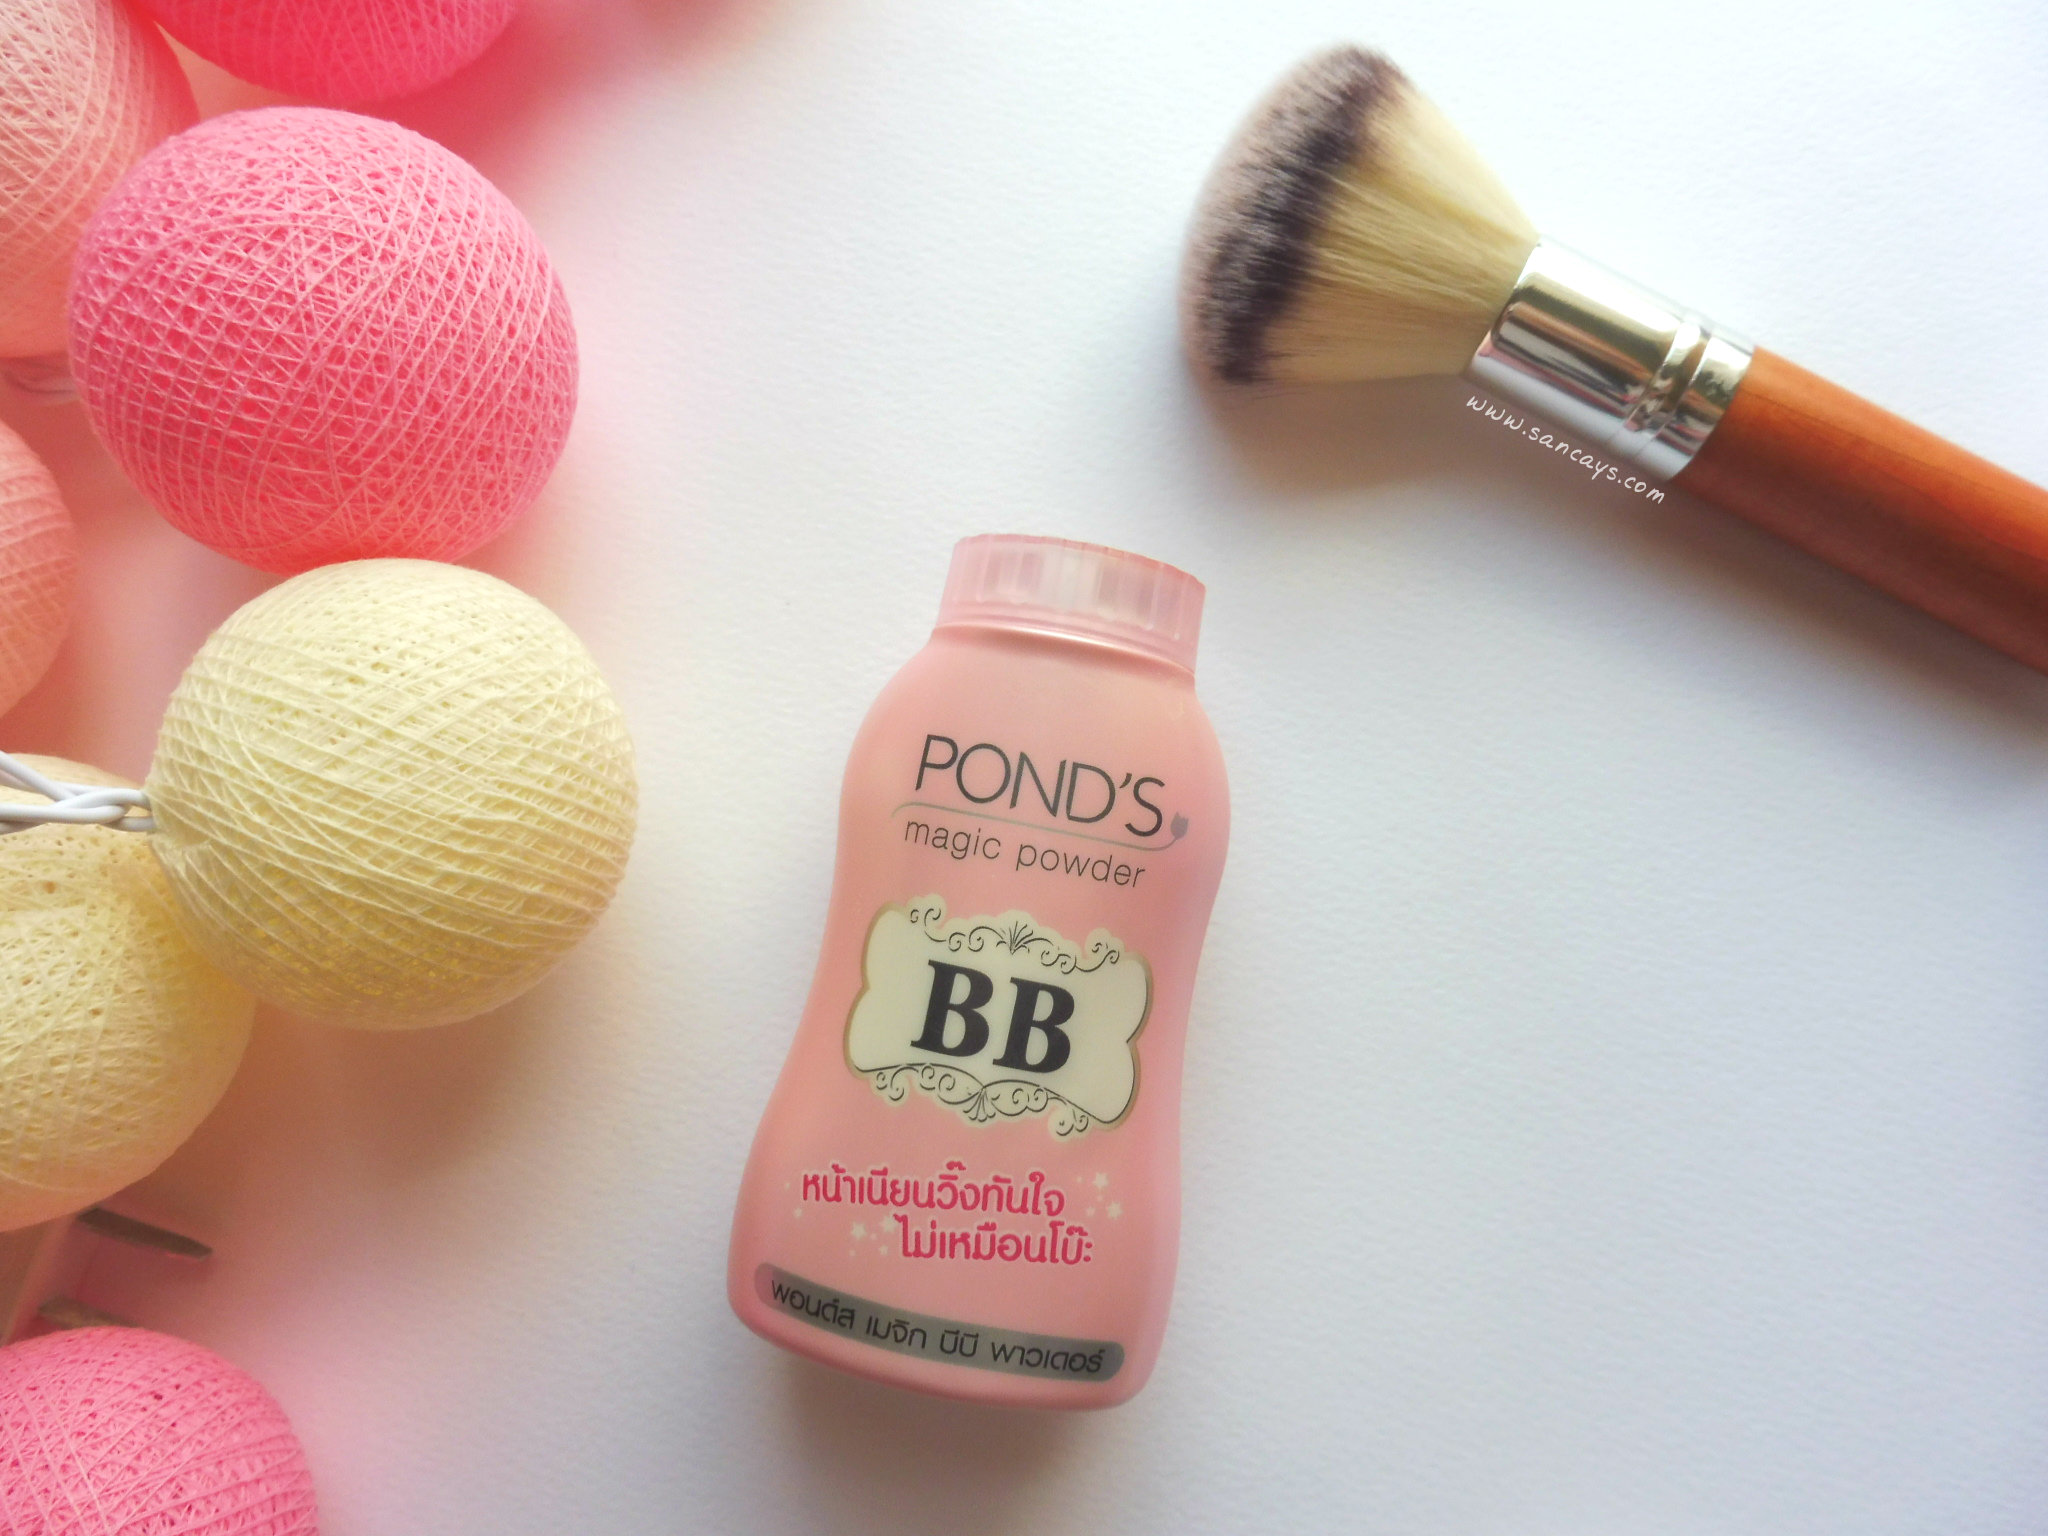 Bedak Pond's Magic Powder BB